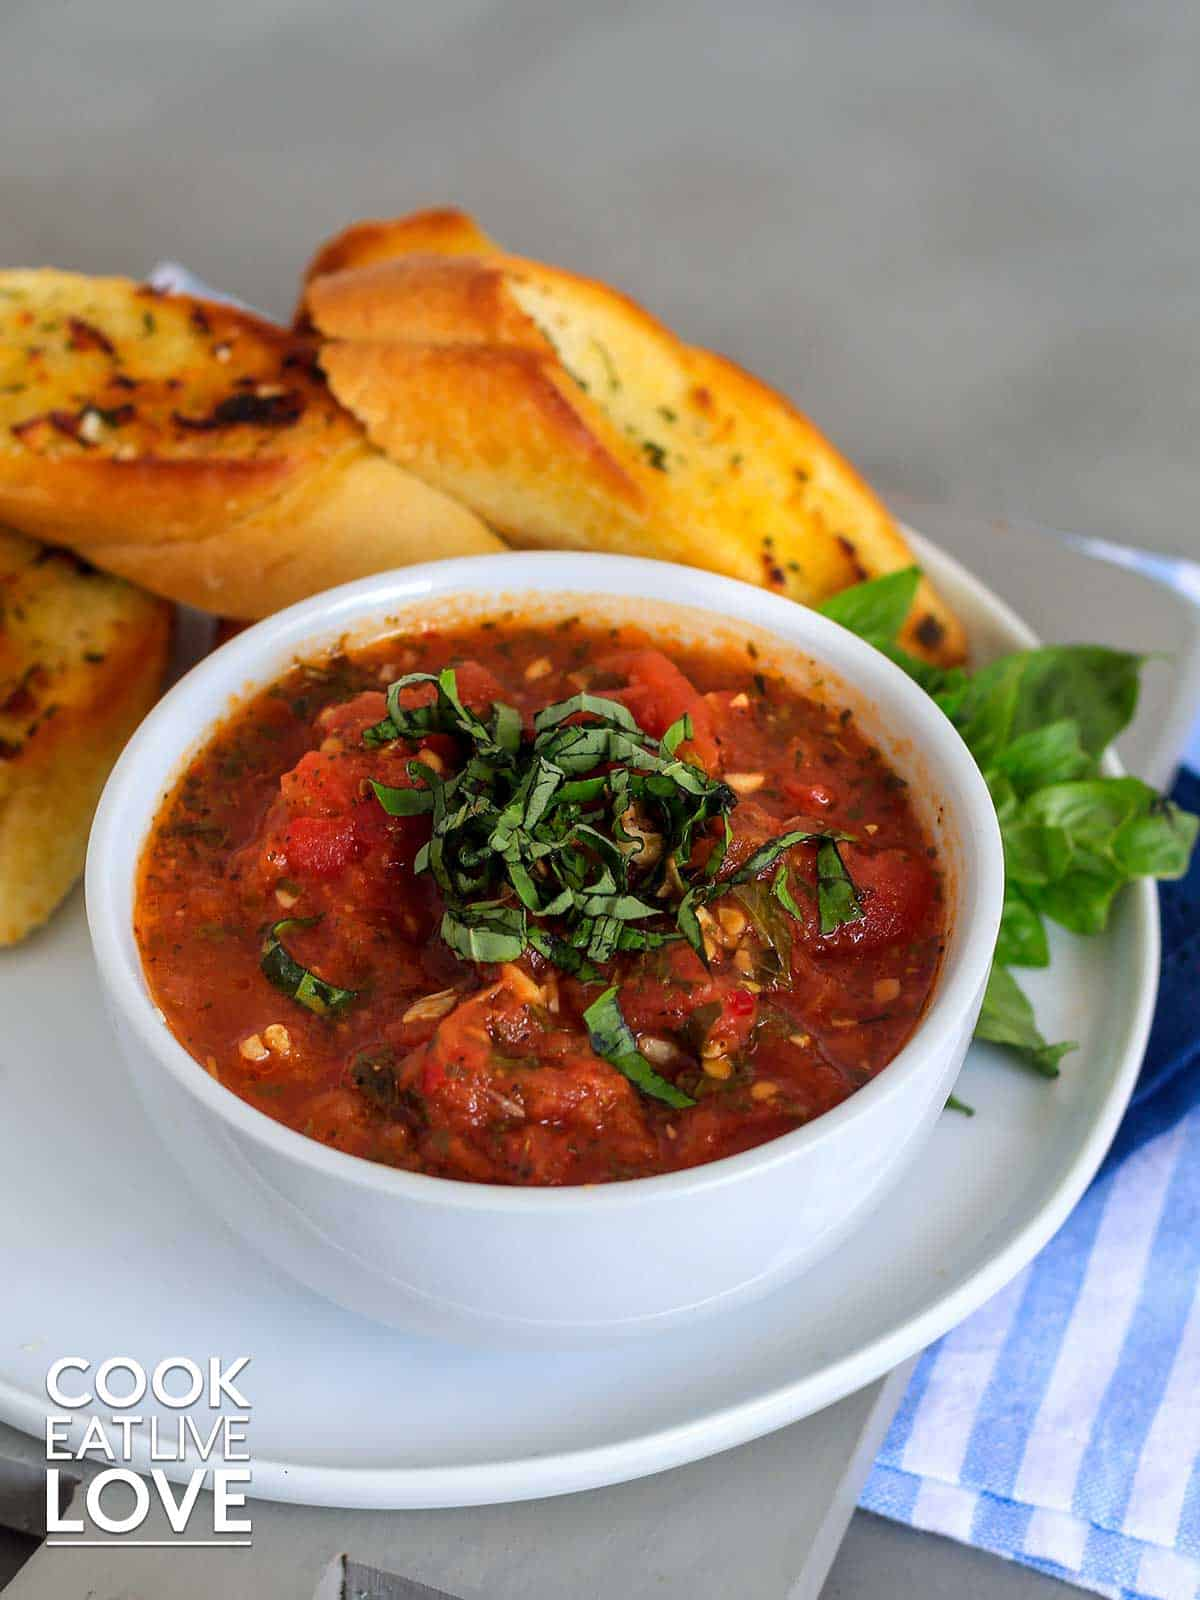 Hearty tomato sauce in bowl on a table with garlic bread